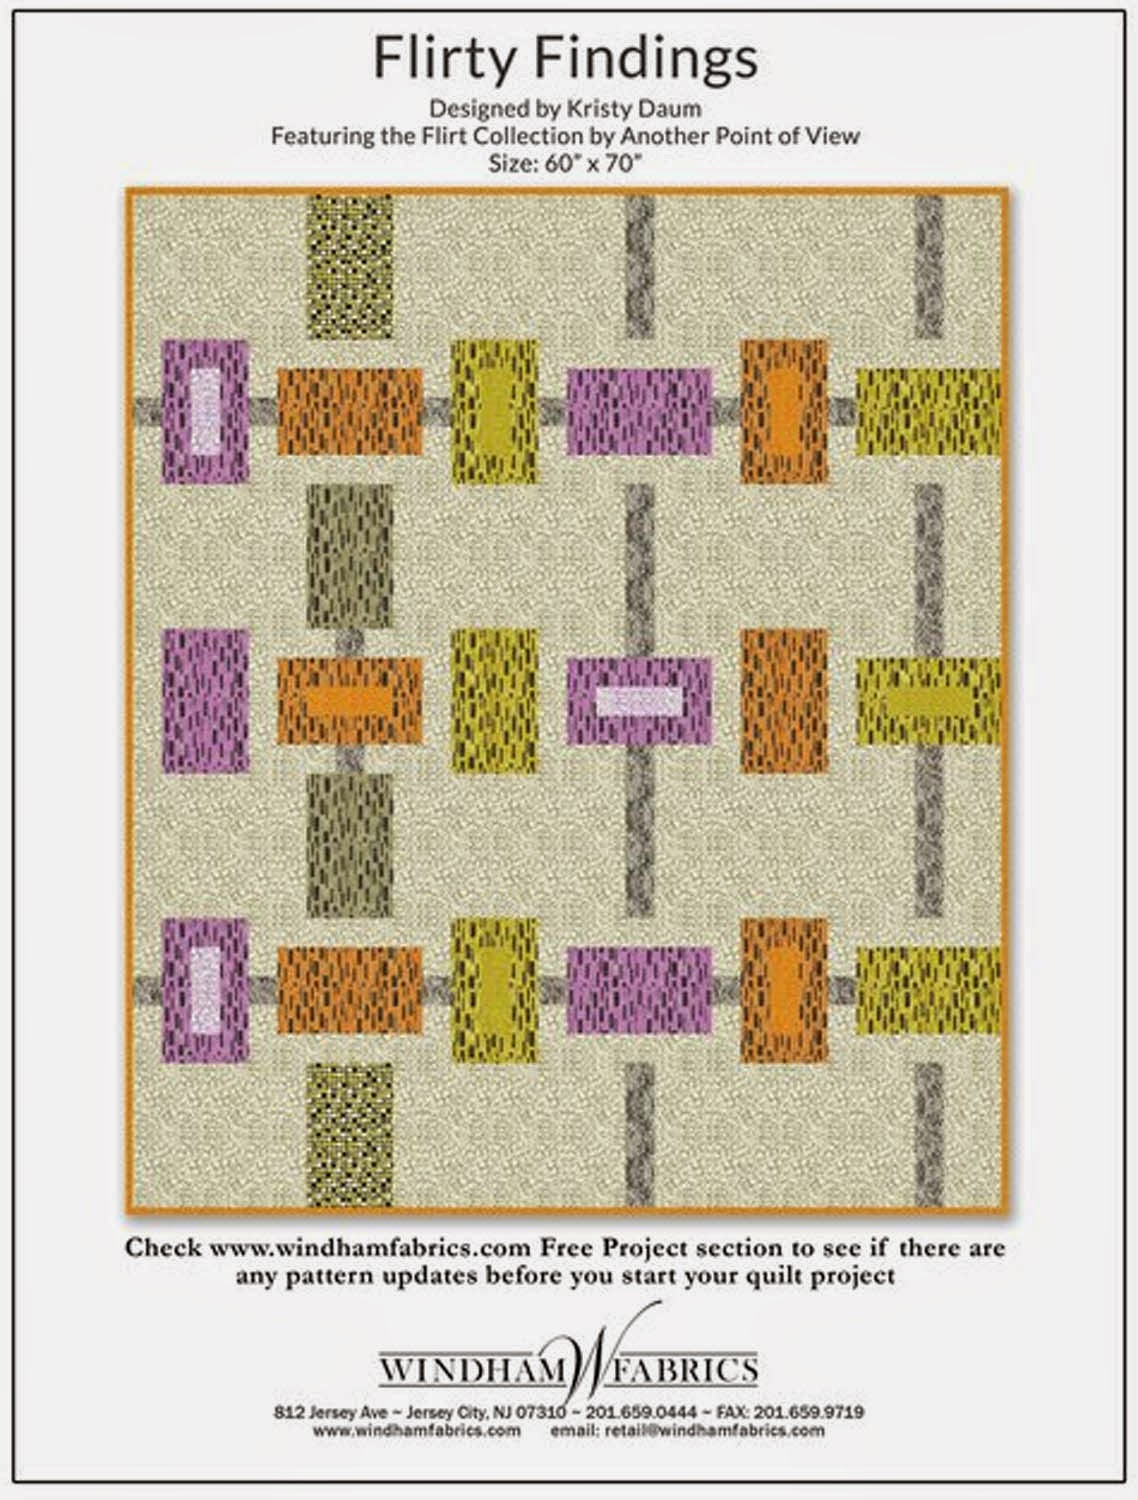 FLIRTY FINDINGS - Free Quilt Pattern